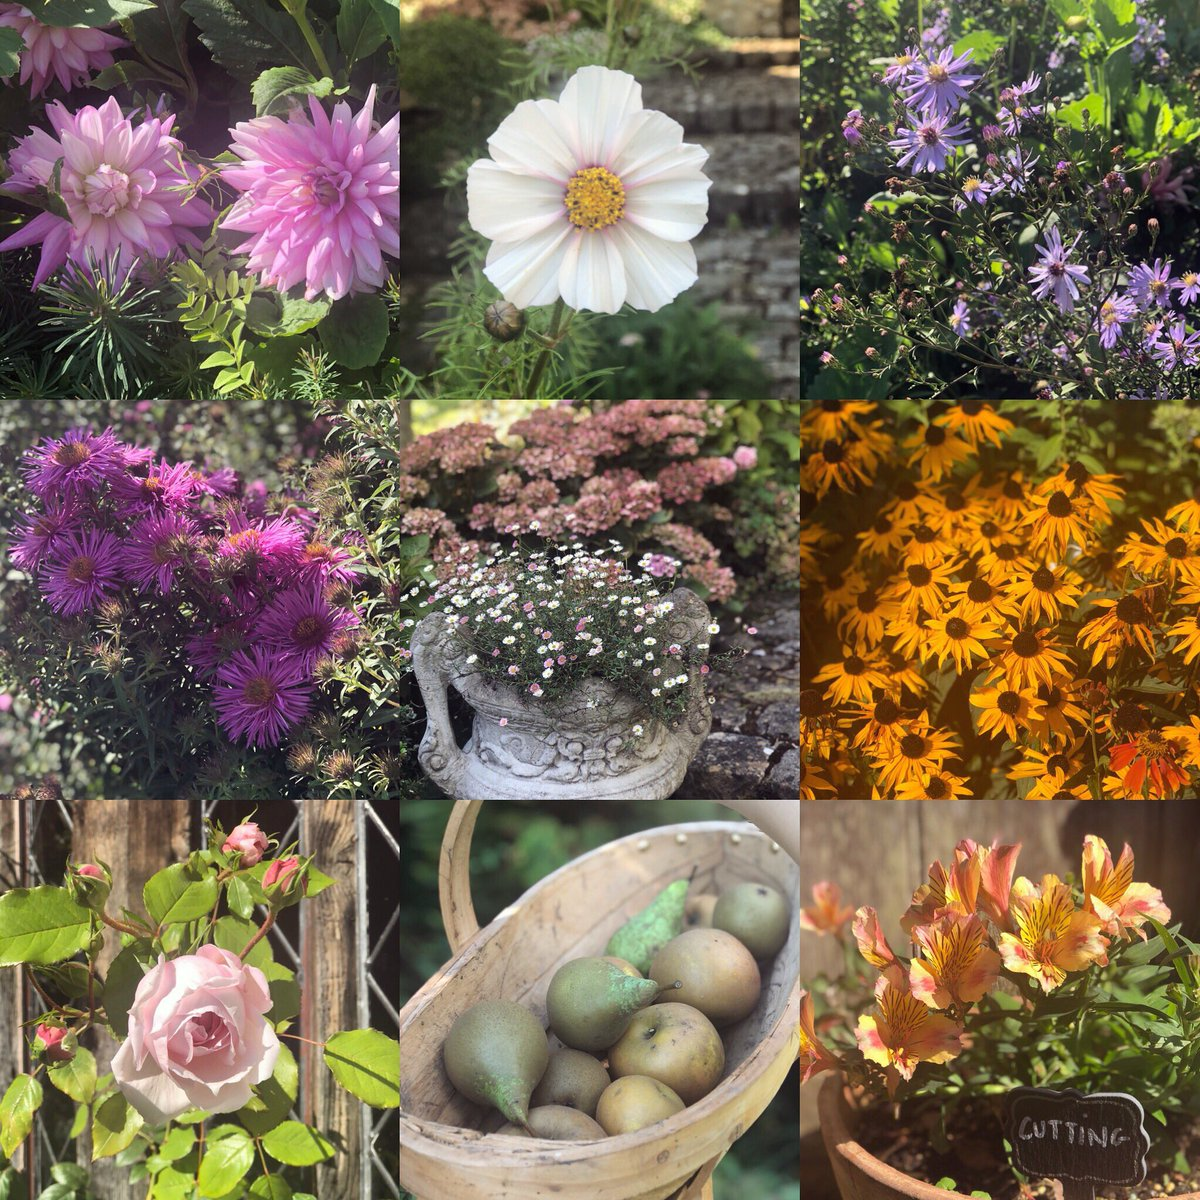 September in my Garden is so Colourful ???????????? How is yours looking send me pics ???? https://t.co/sa1AinwDTN